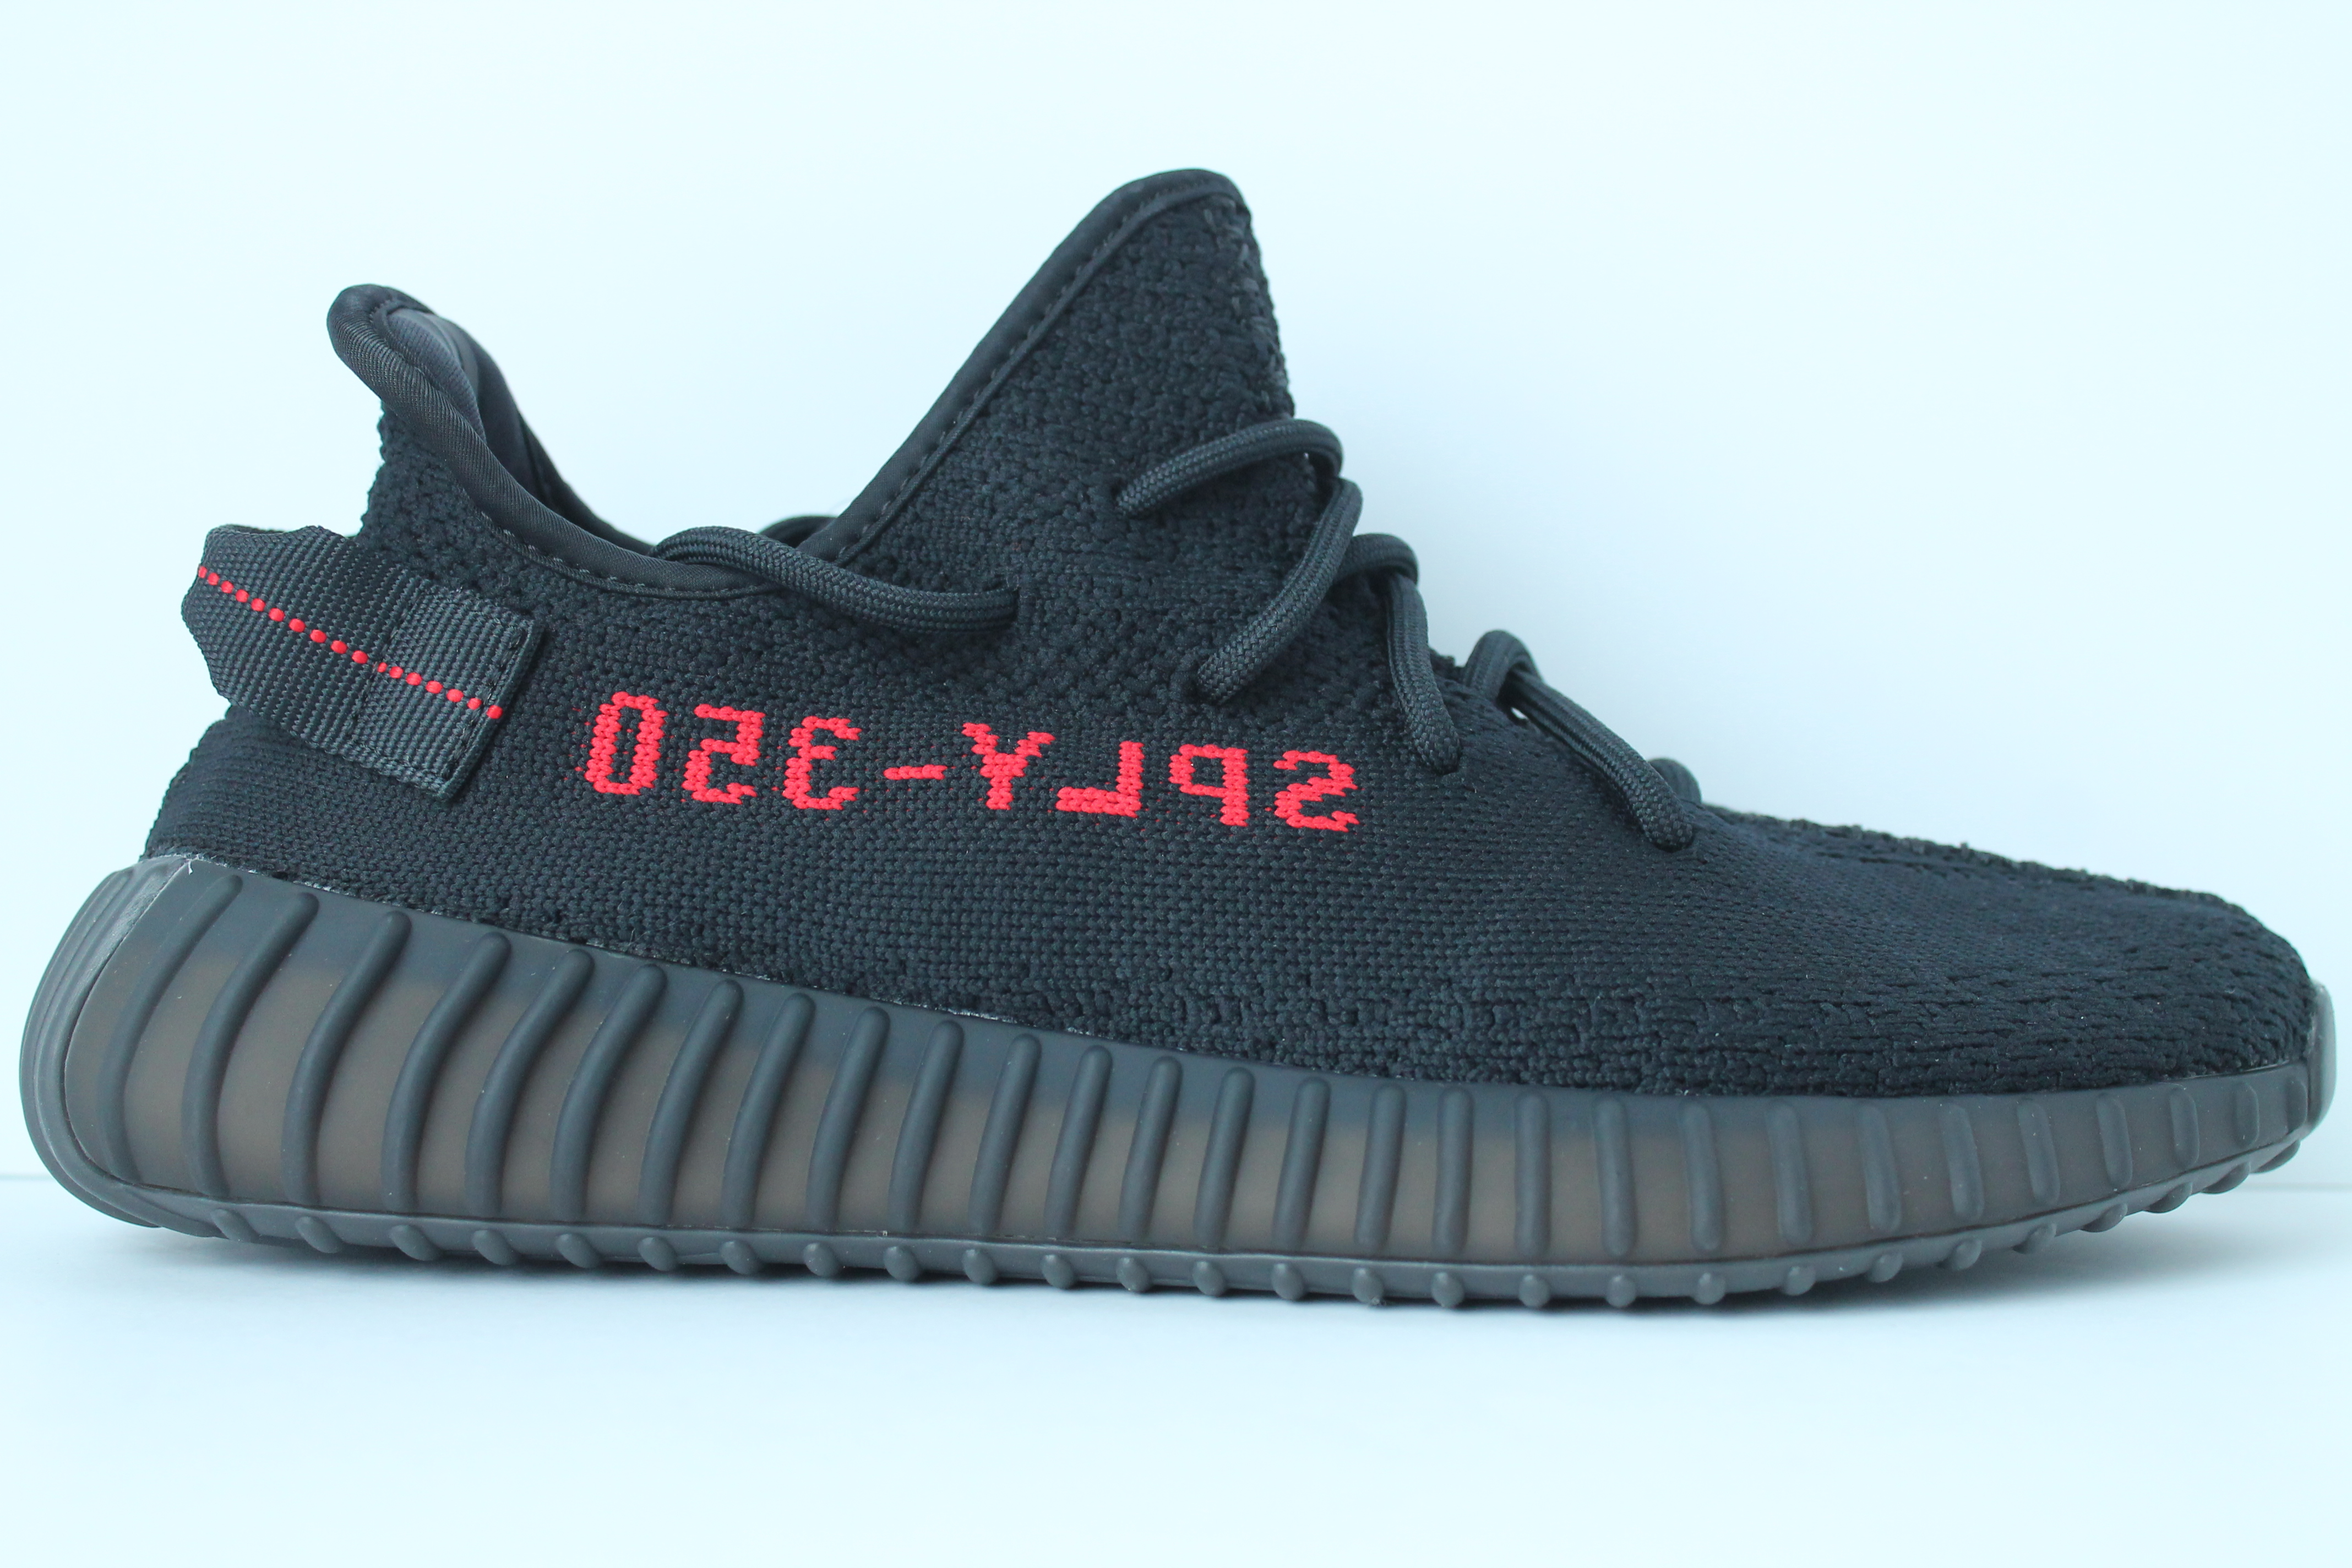 online store 76859 d9984 Adidas Yeezy Boost 350 V2